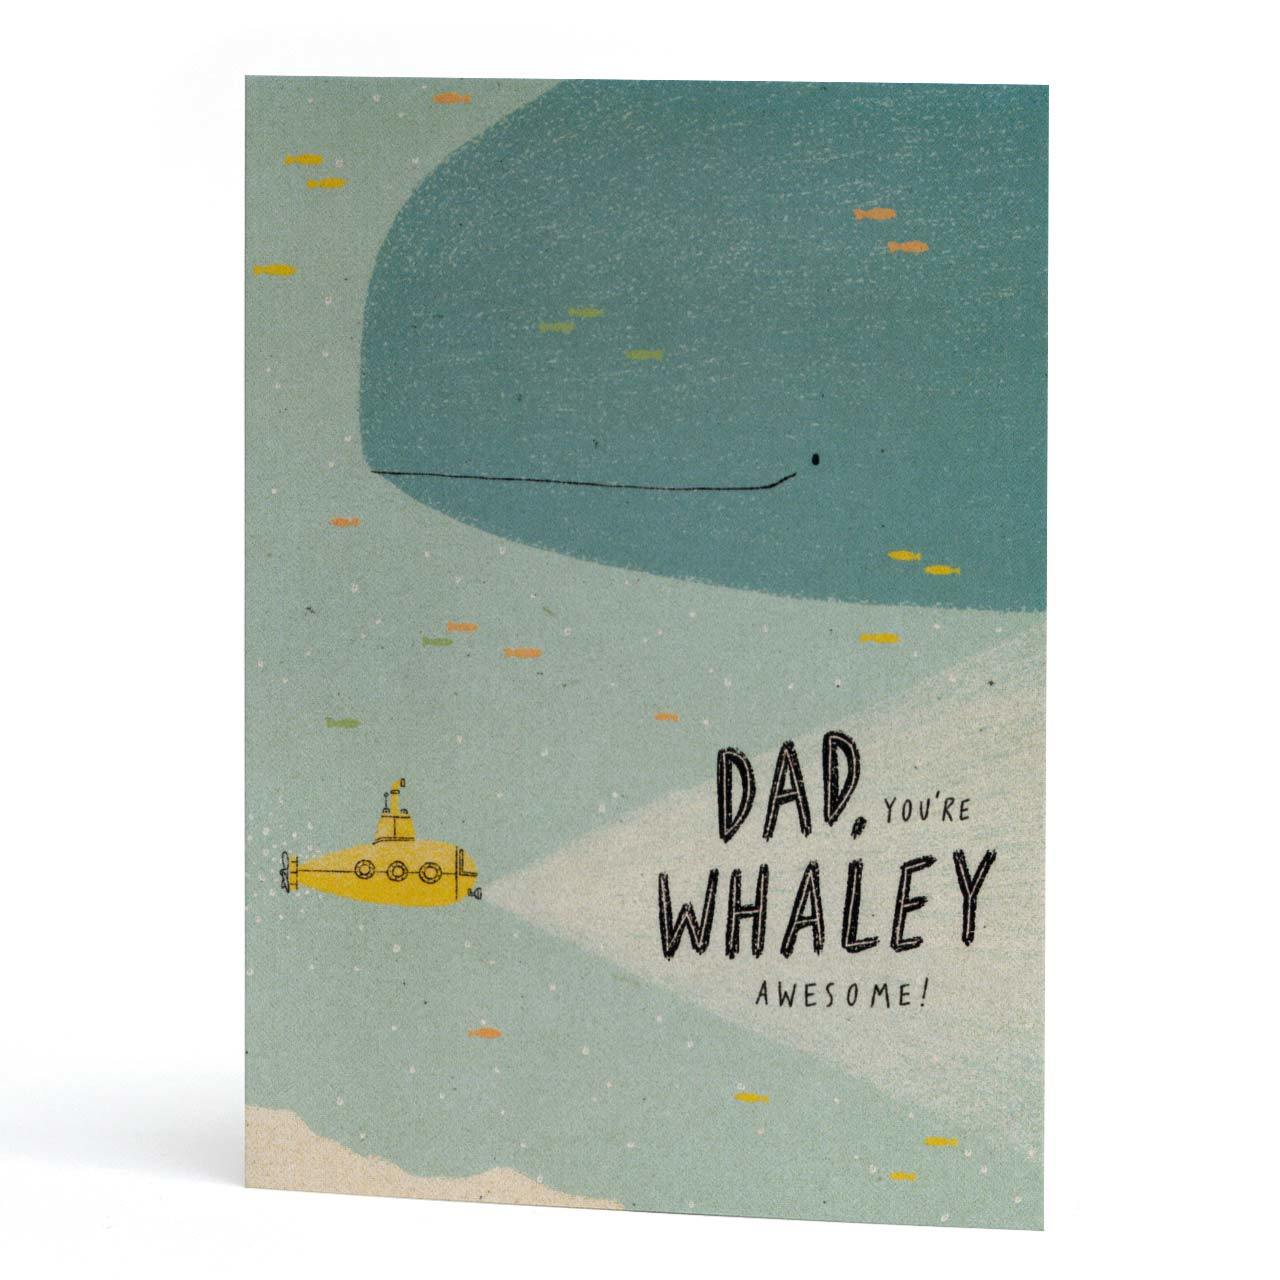 Whaley Awesome Dad Greeting Card